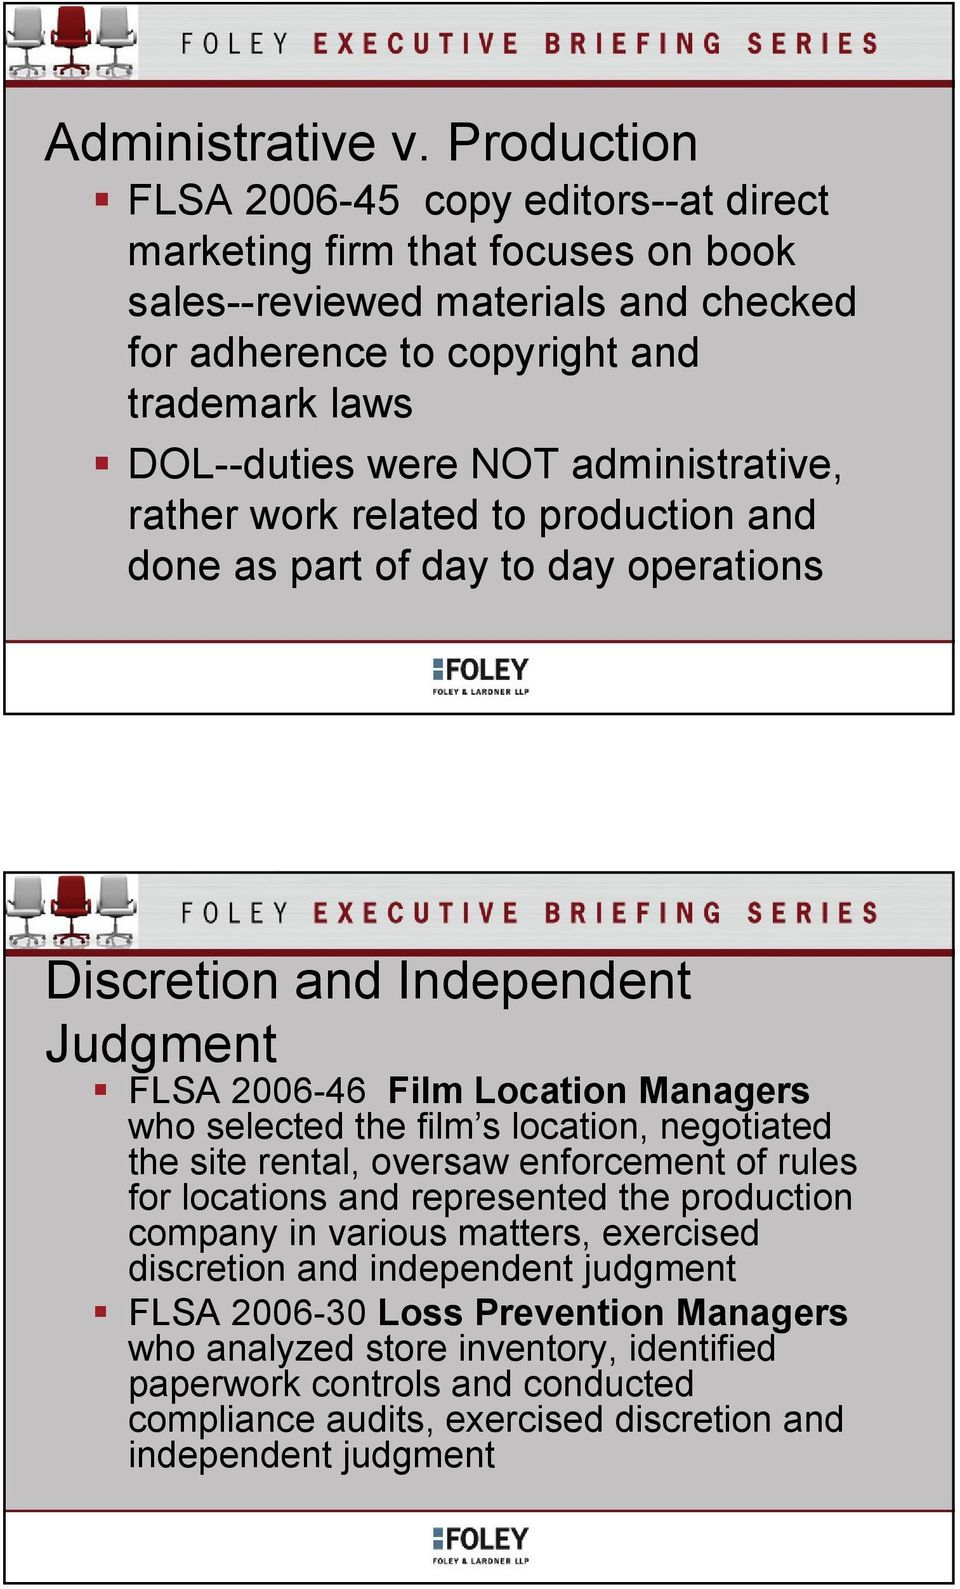 administrative, rather work related to production and done as part of day to day operations Discretion and Independent Judgment FLSA 2006-46 Film Location Managers who selected the film s